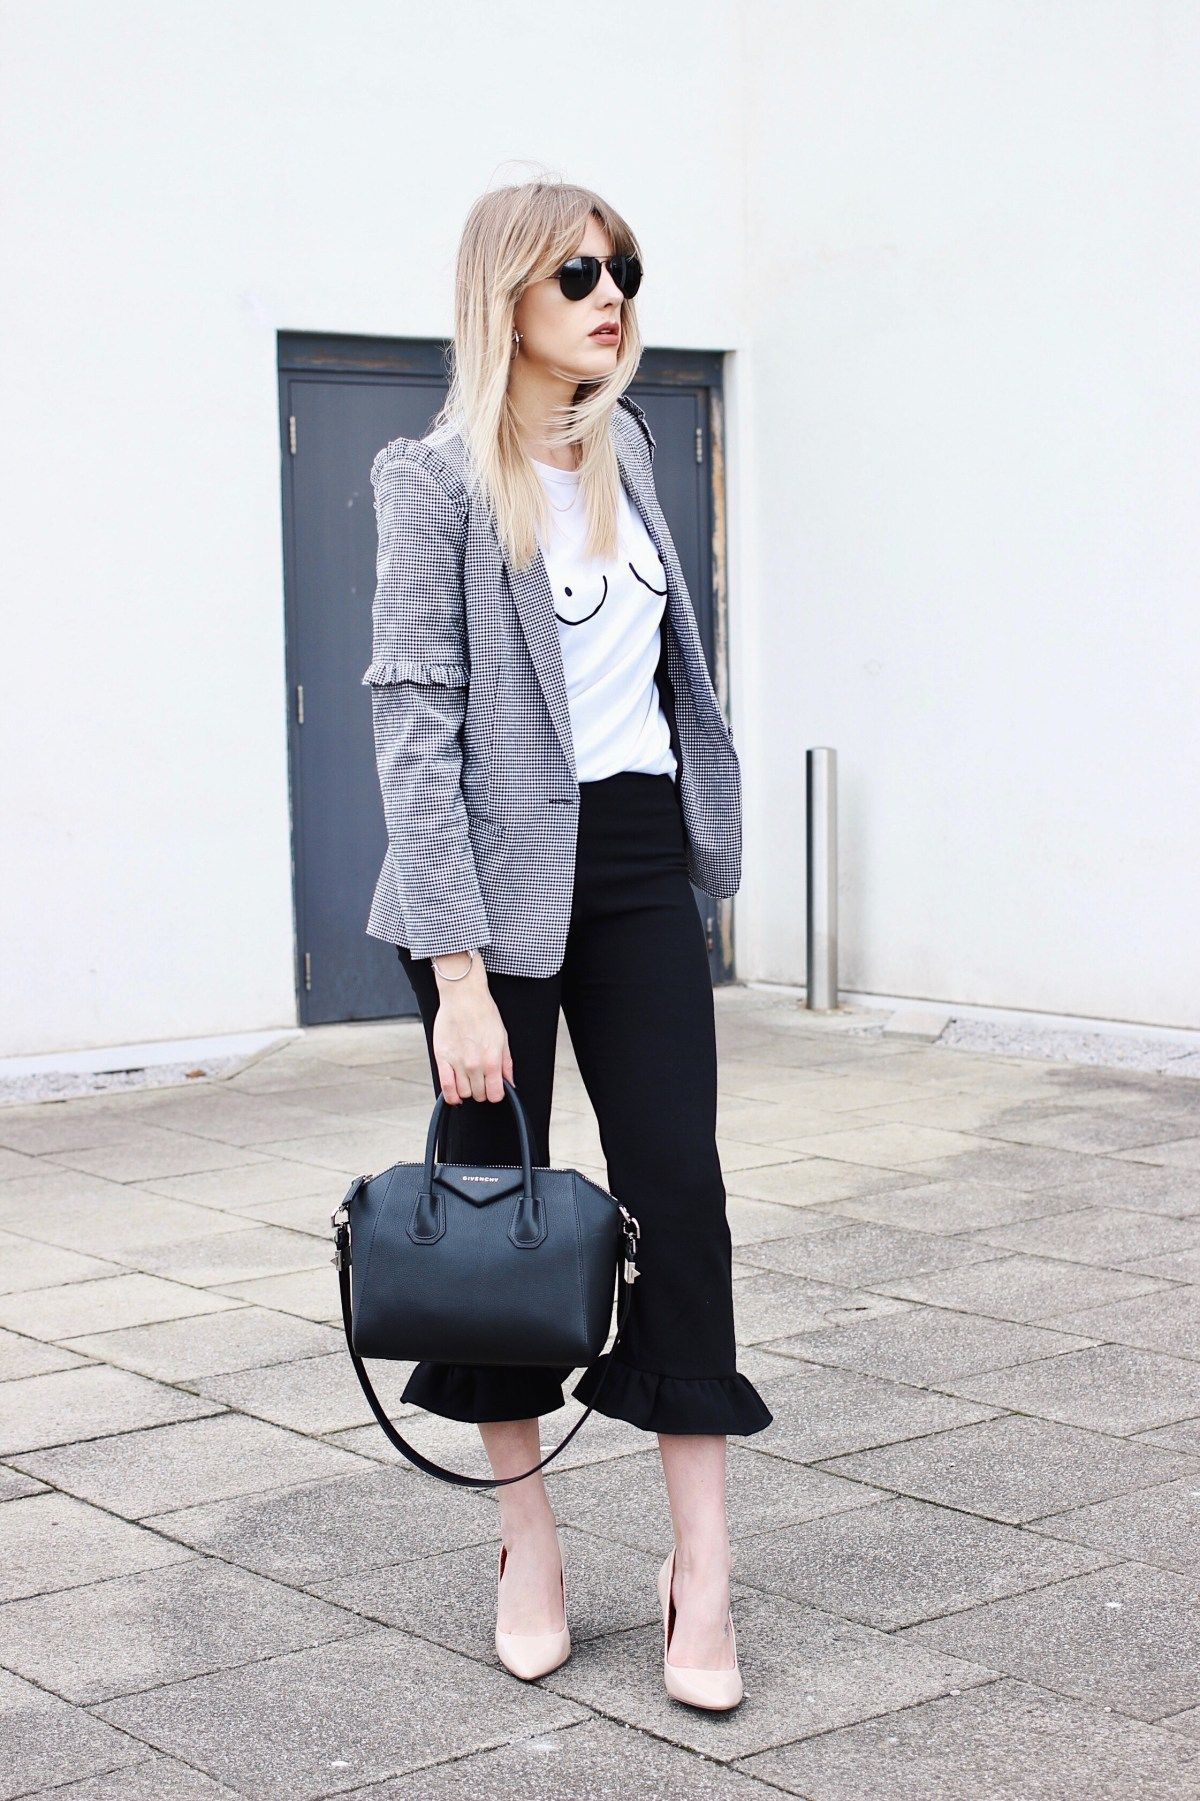 817b5460c84 High Street Fashion Blogger in their 30s - Charlotte Buttrick - Frill  trousers - boob t-shirt - gingham check blazer and nude court shoes street  style